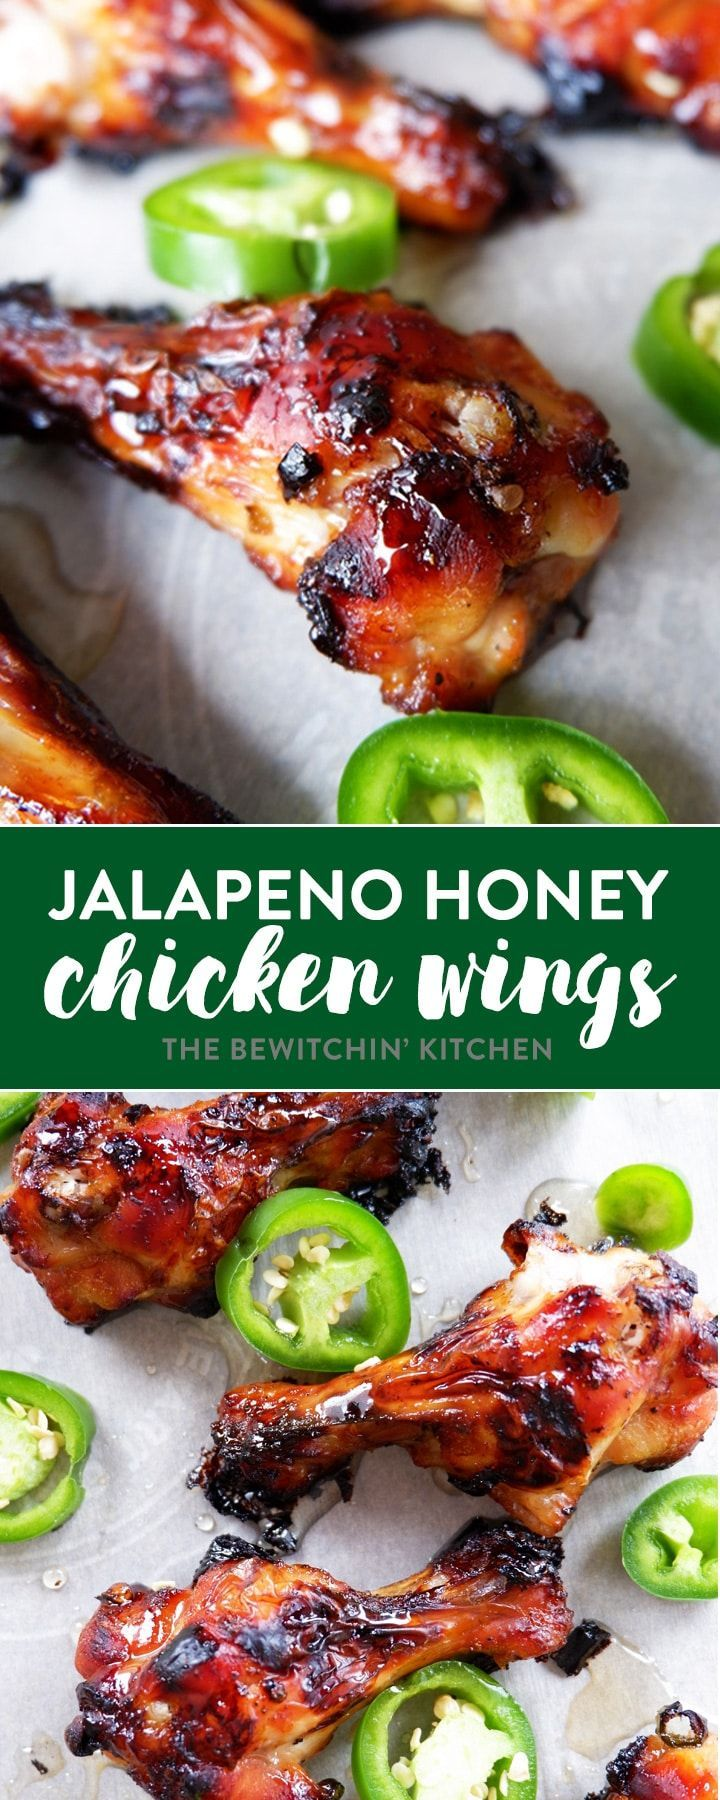 Jalapeno Honey Chicken Wings. These oven baked chicken wings are both sweet and spicy. They resemble teriyaki wings with a twist.